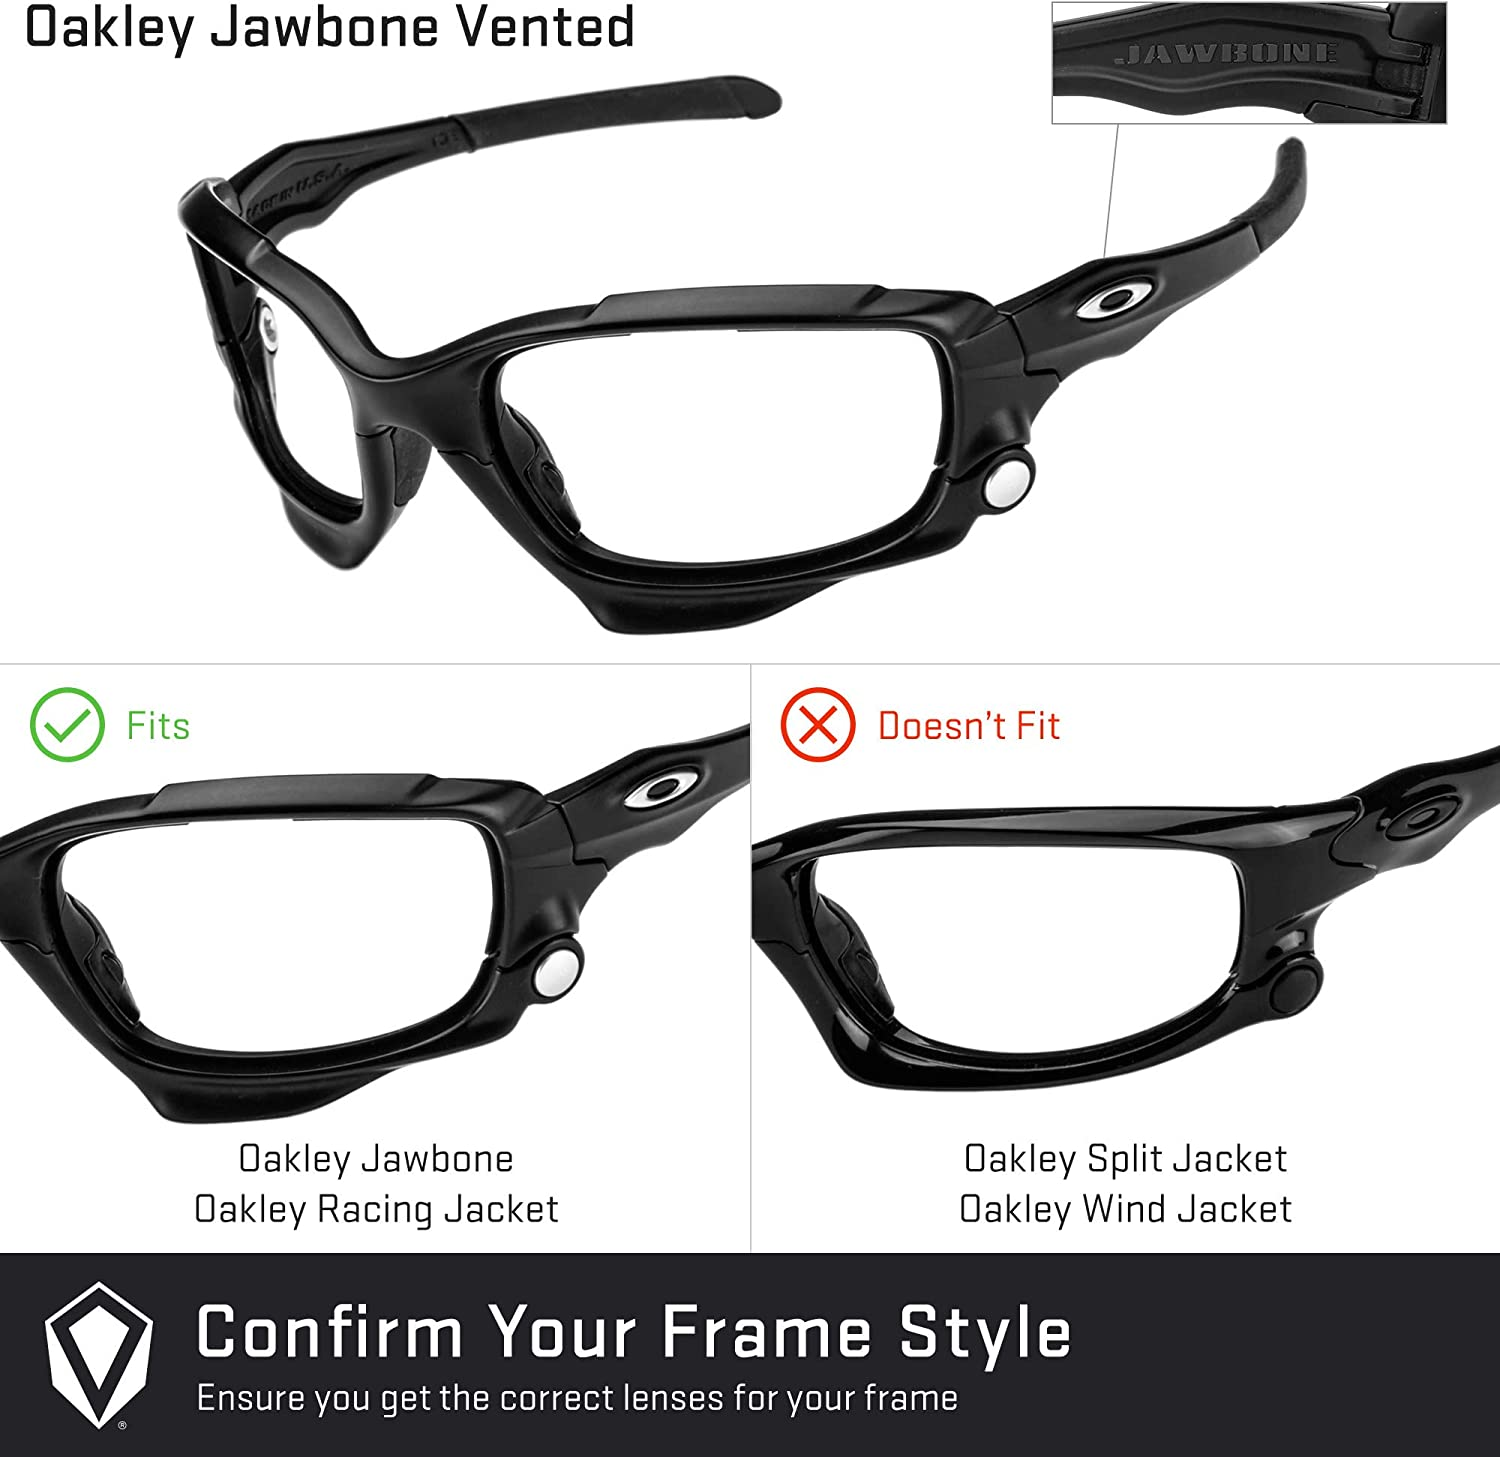 Revant Replacement Lenses for Oakley Jawbone Vented, Non-Polarized ...